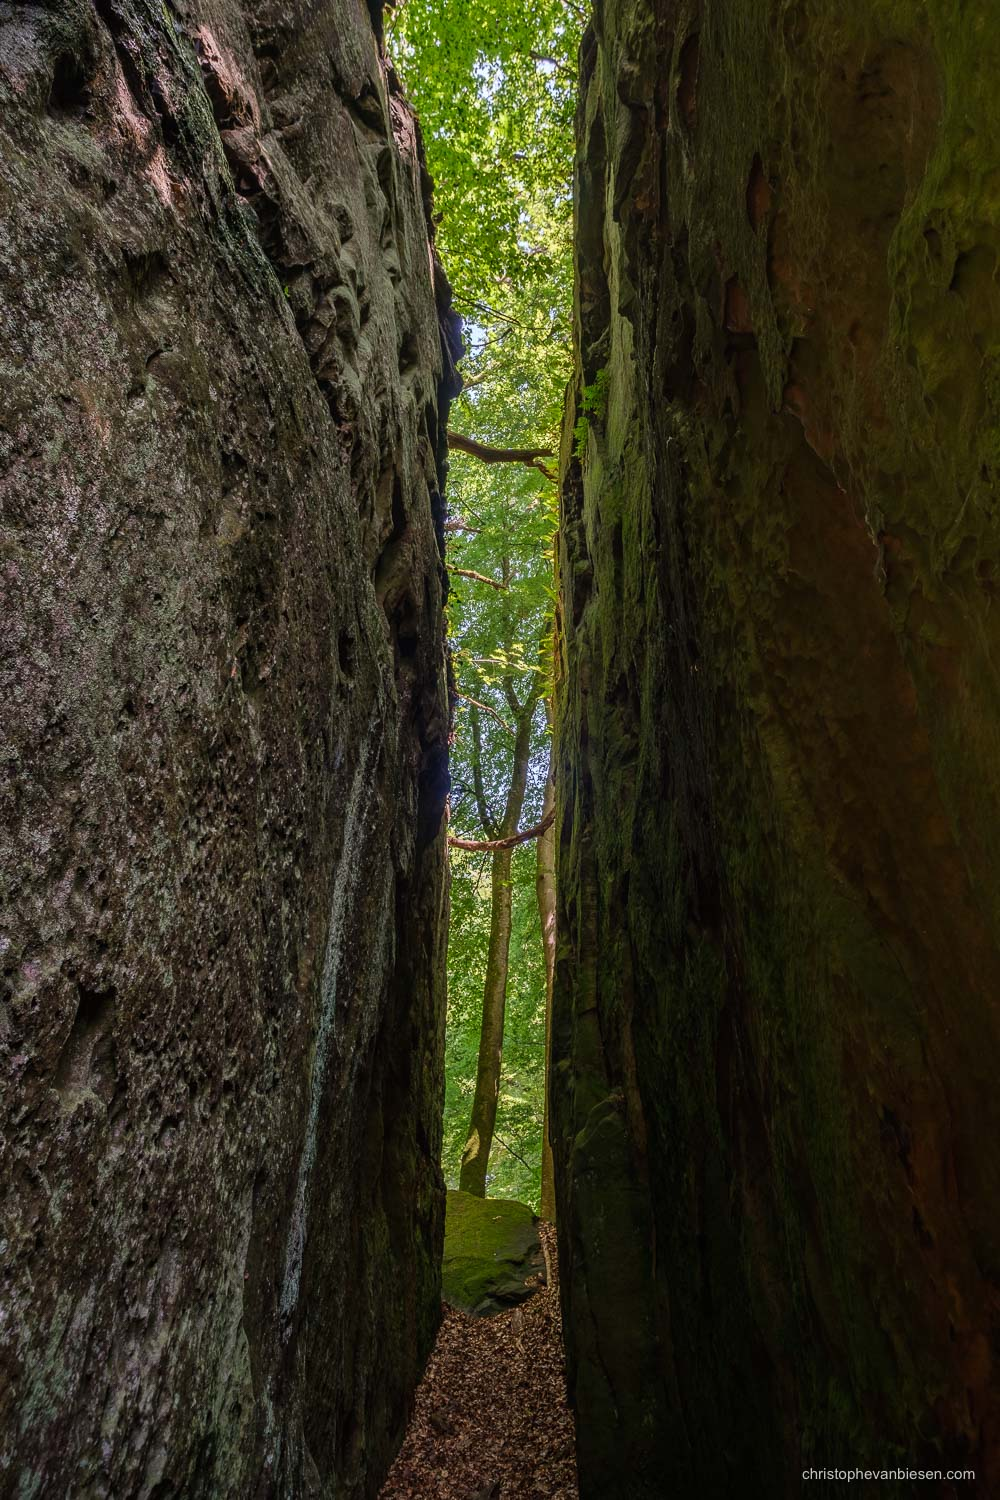 Visit the Mullerthal - Luxembourg - Narrow passage in the Mullerthal's rock formations in eastern Luxembourg - Tunnel View